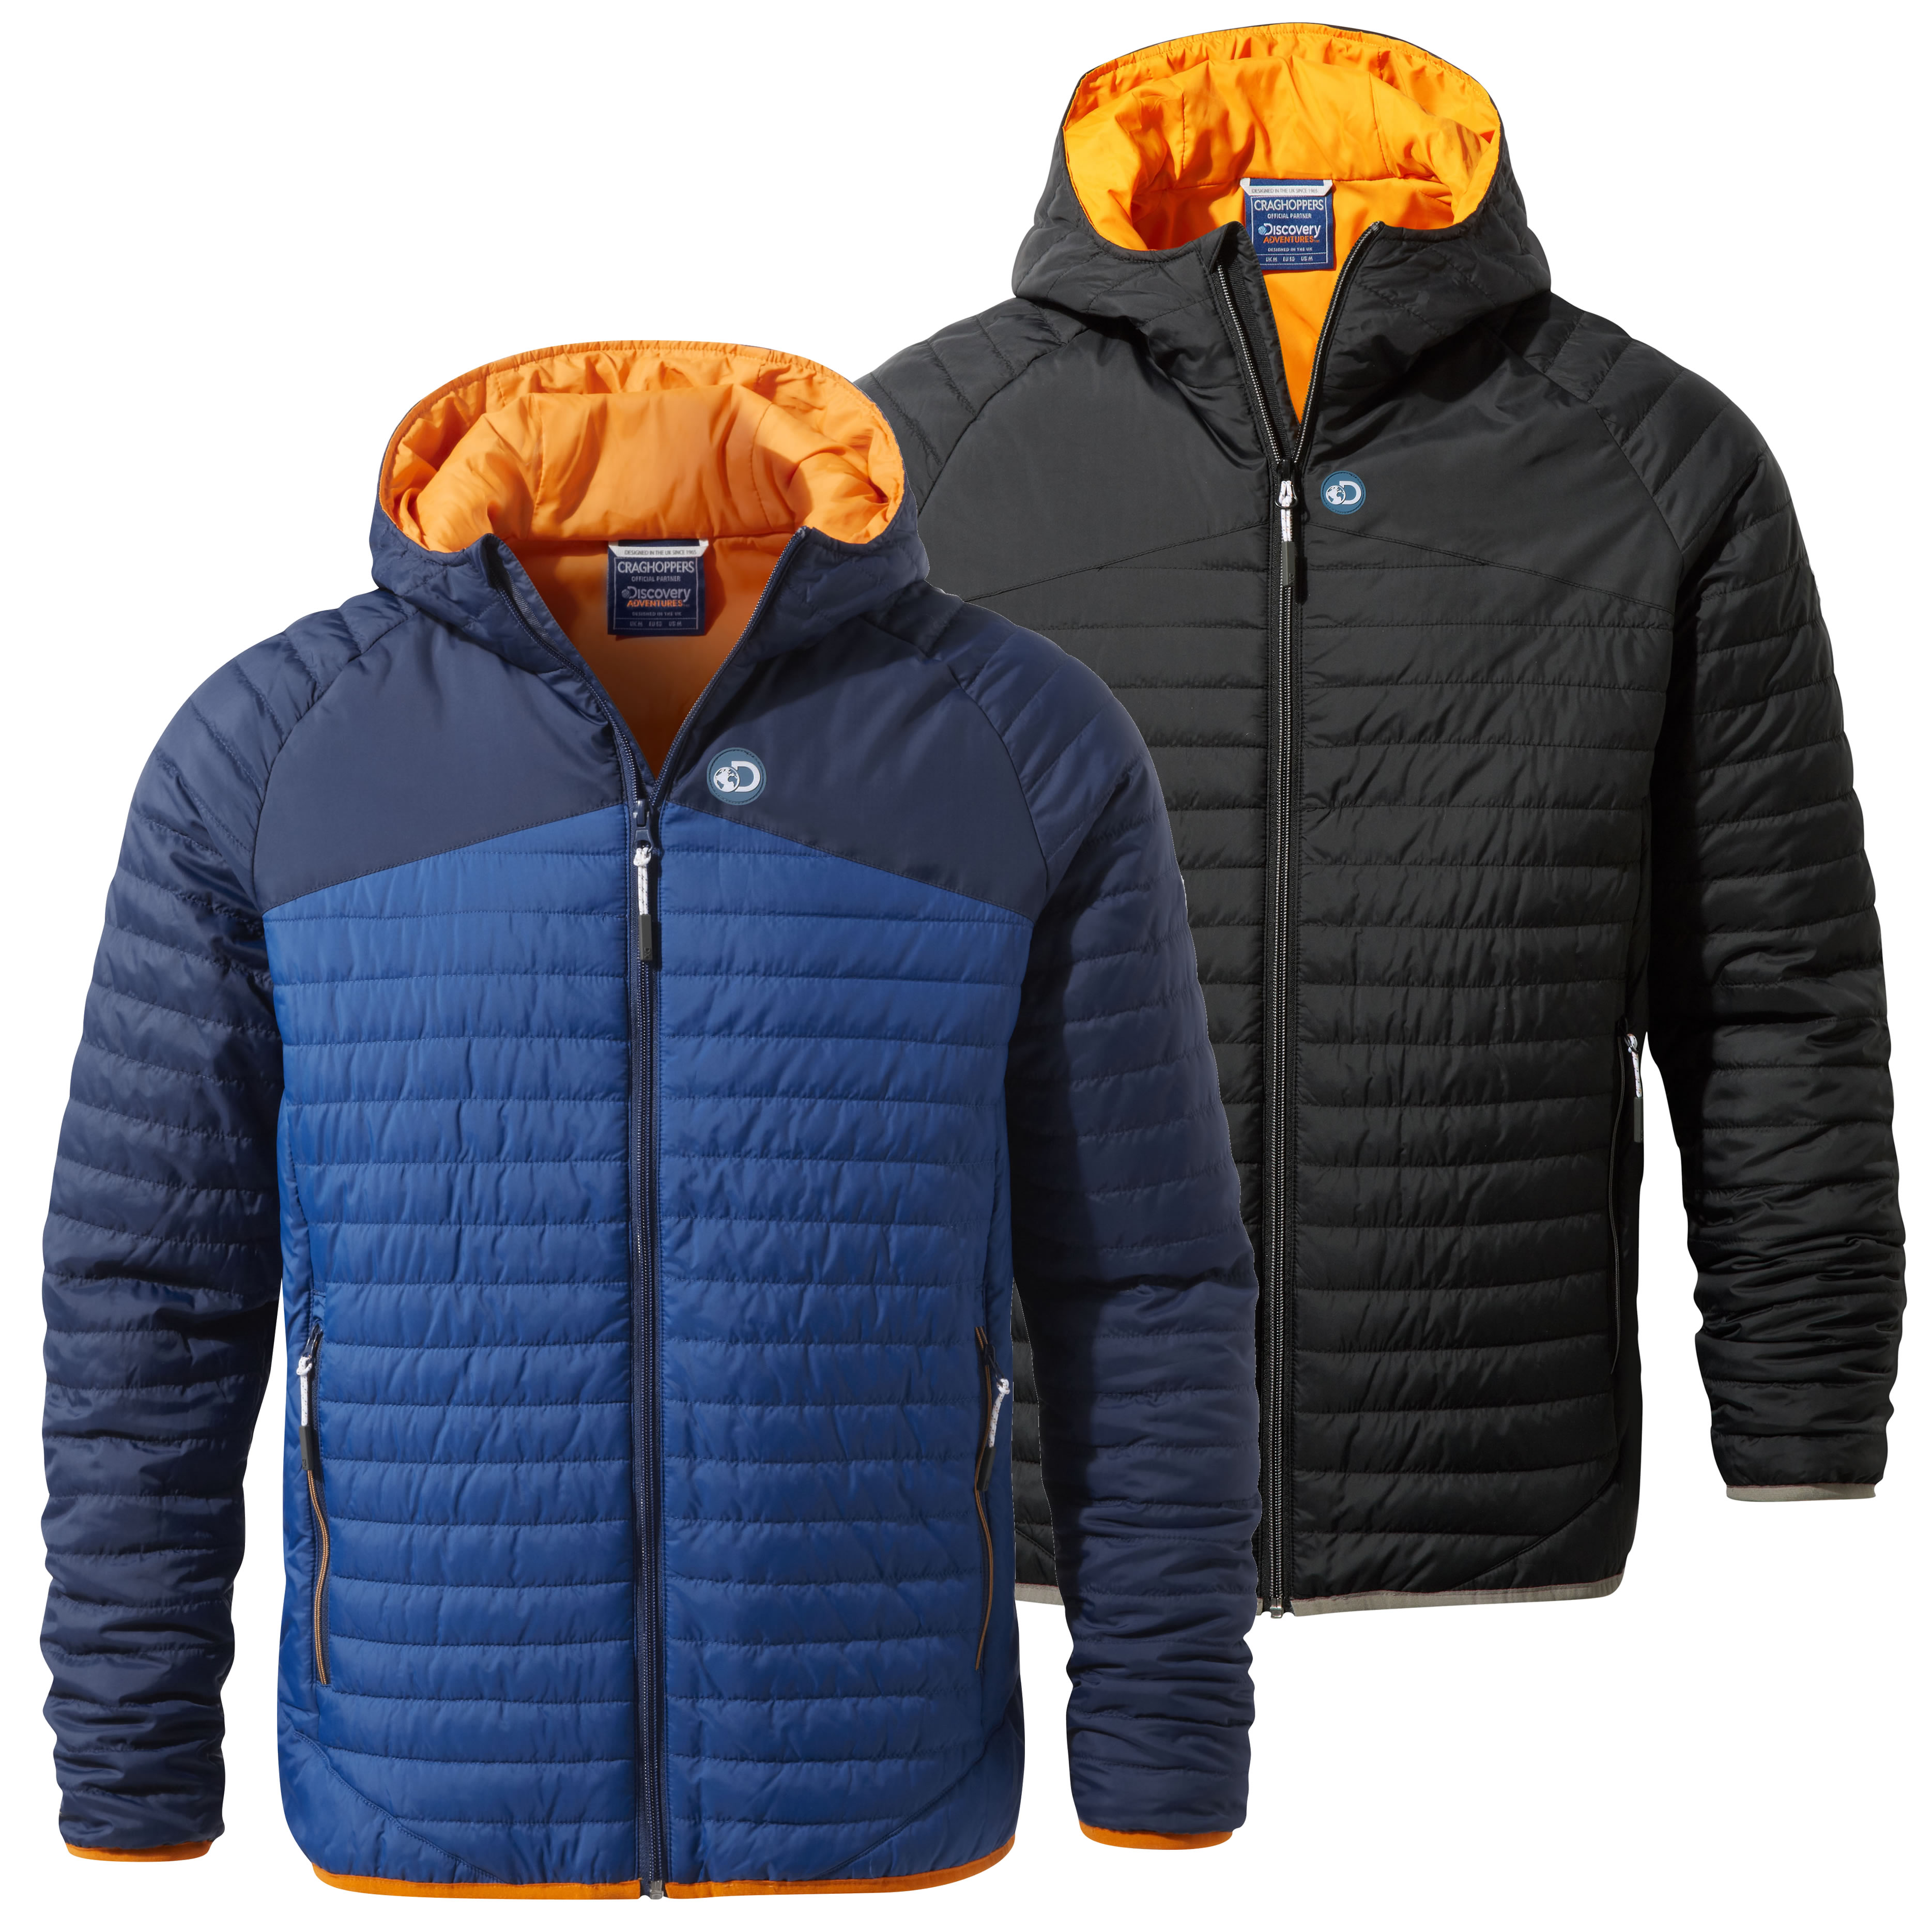 838f3f4e59ae5 Craghoppers Discovery Adventures Climaplus Mens Jacket New Season ...